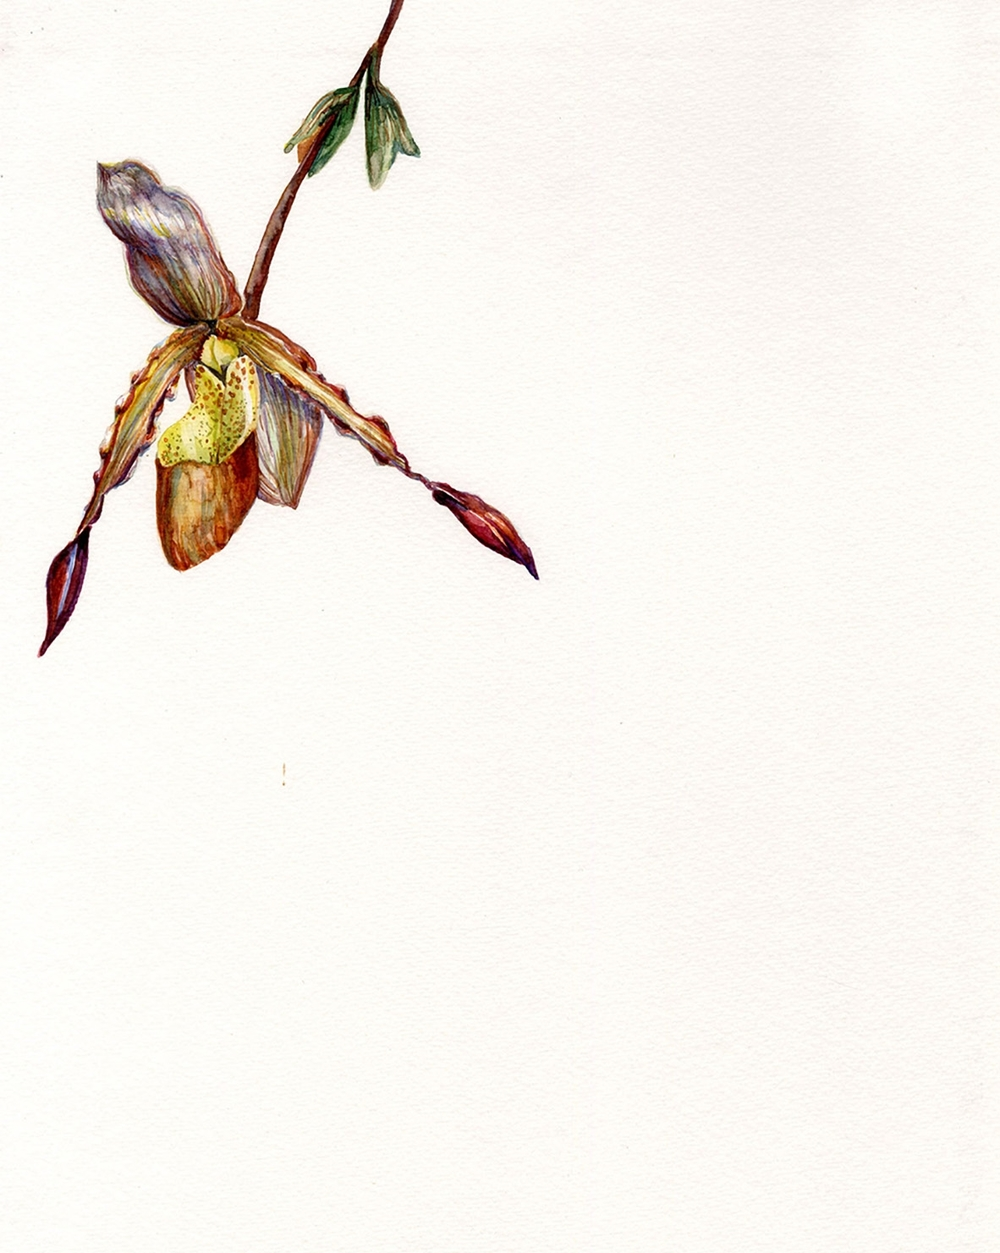 Hanging Lady's Slipper Orchid